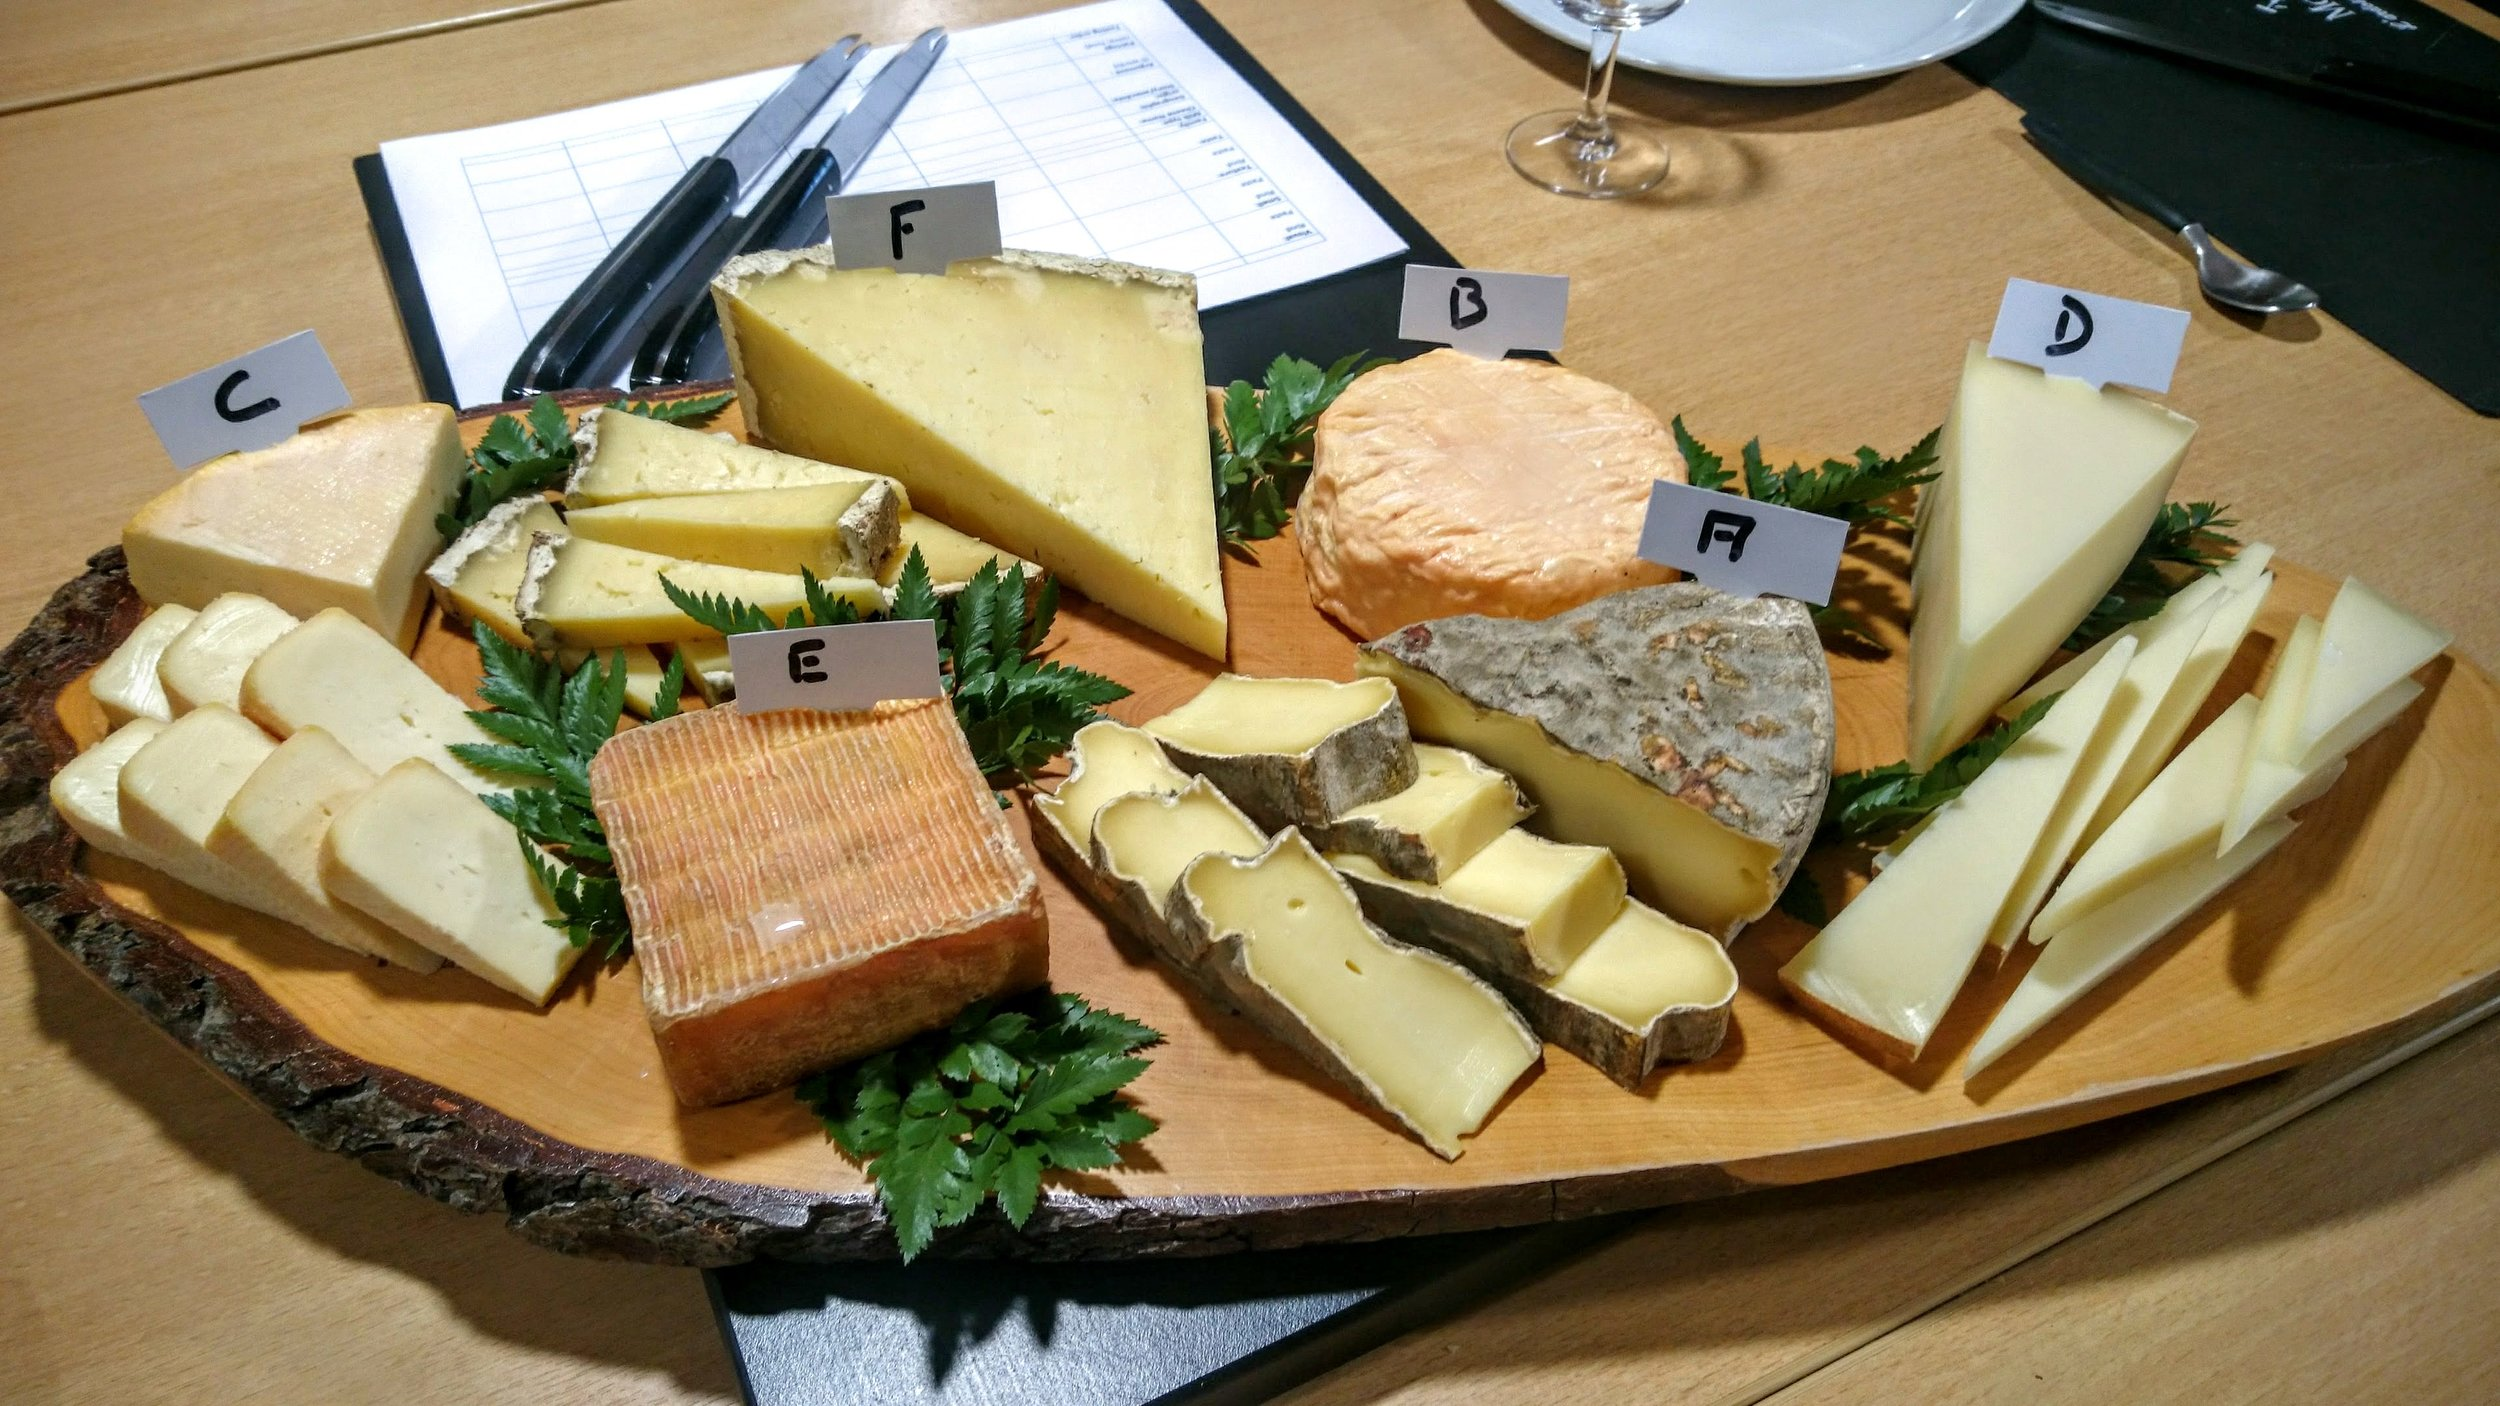 Daily tasting:(A) St Nectaire, (B) Époisses, (C) Munster, (D) Ossau-Iraty, (E) Petit Maroilles, (F) Salers